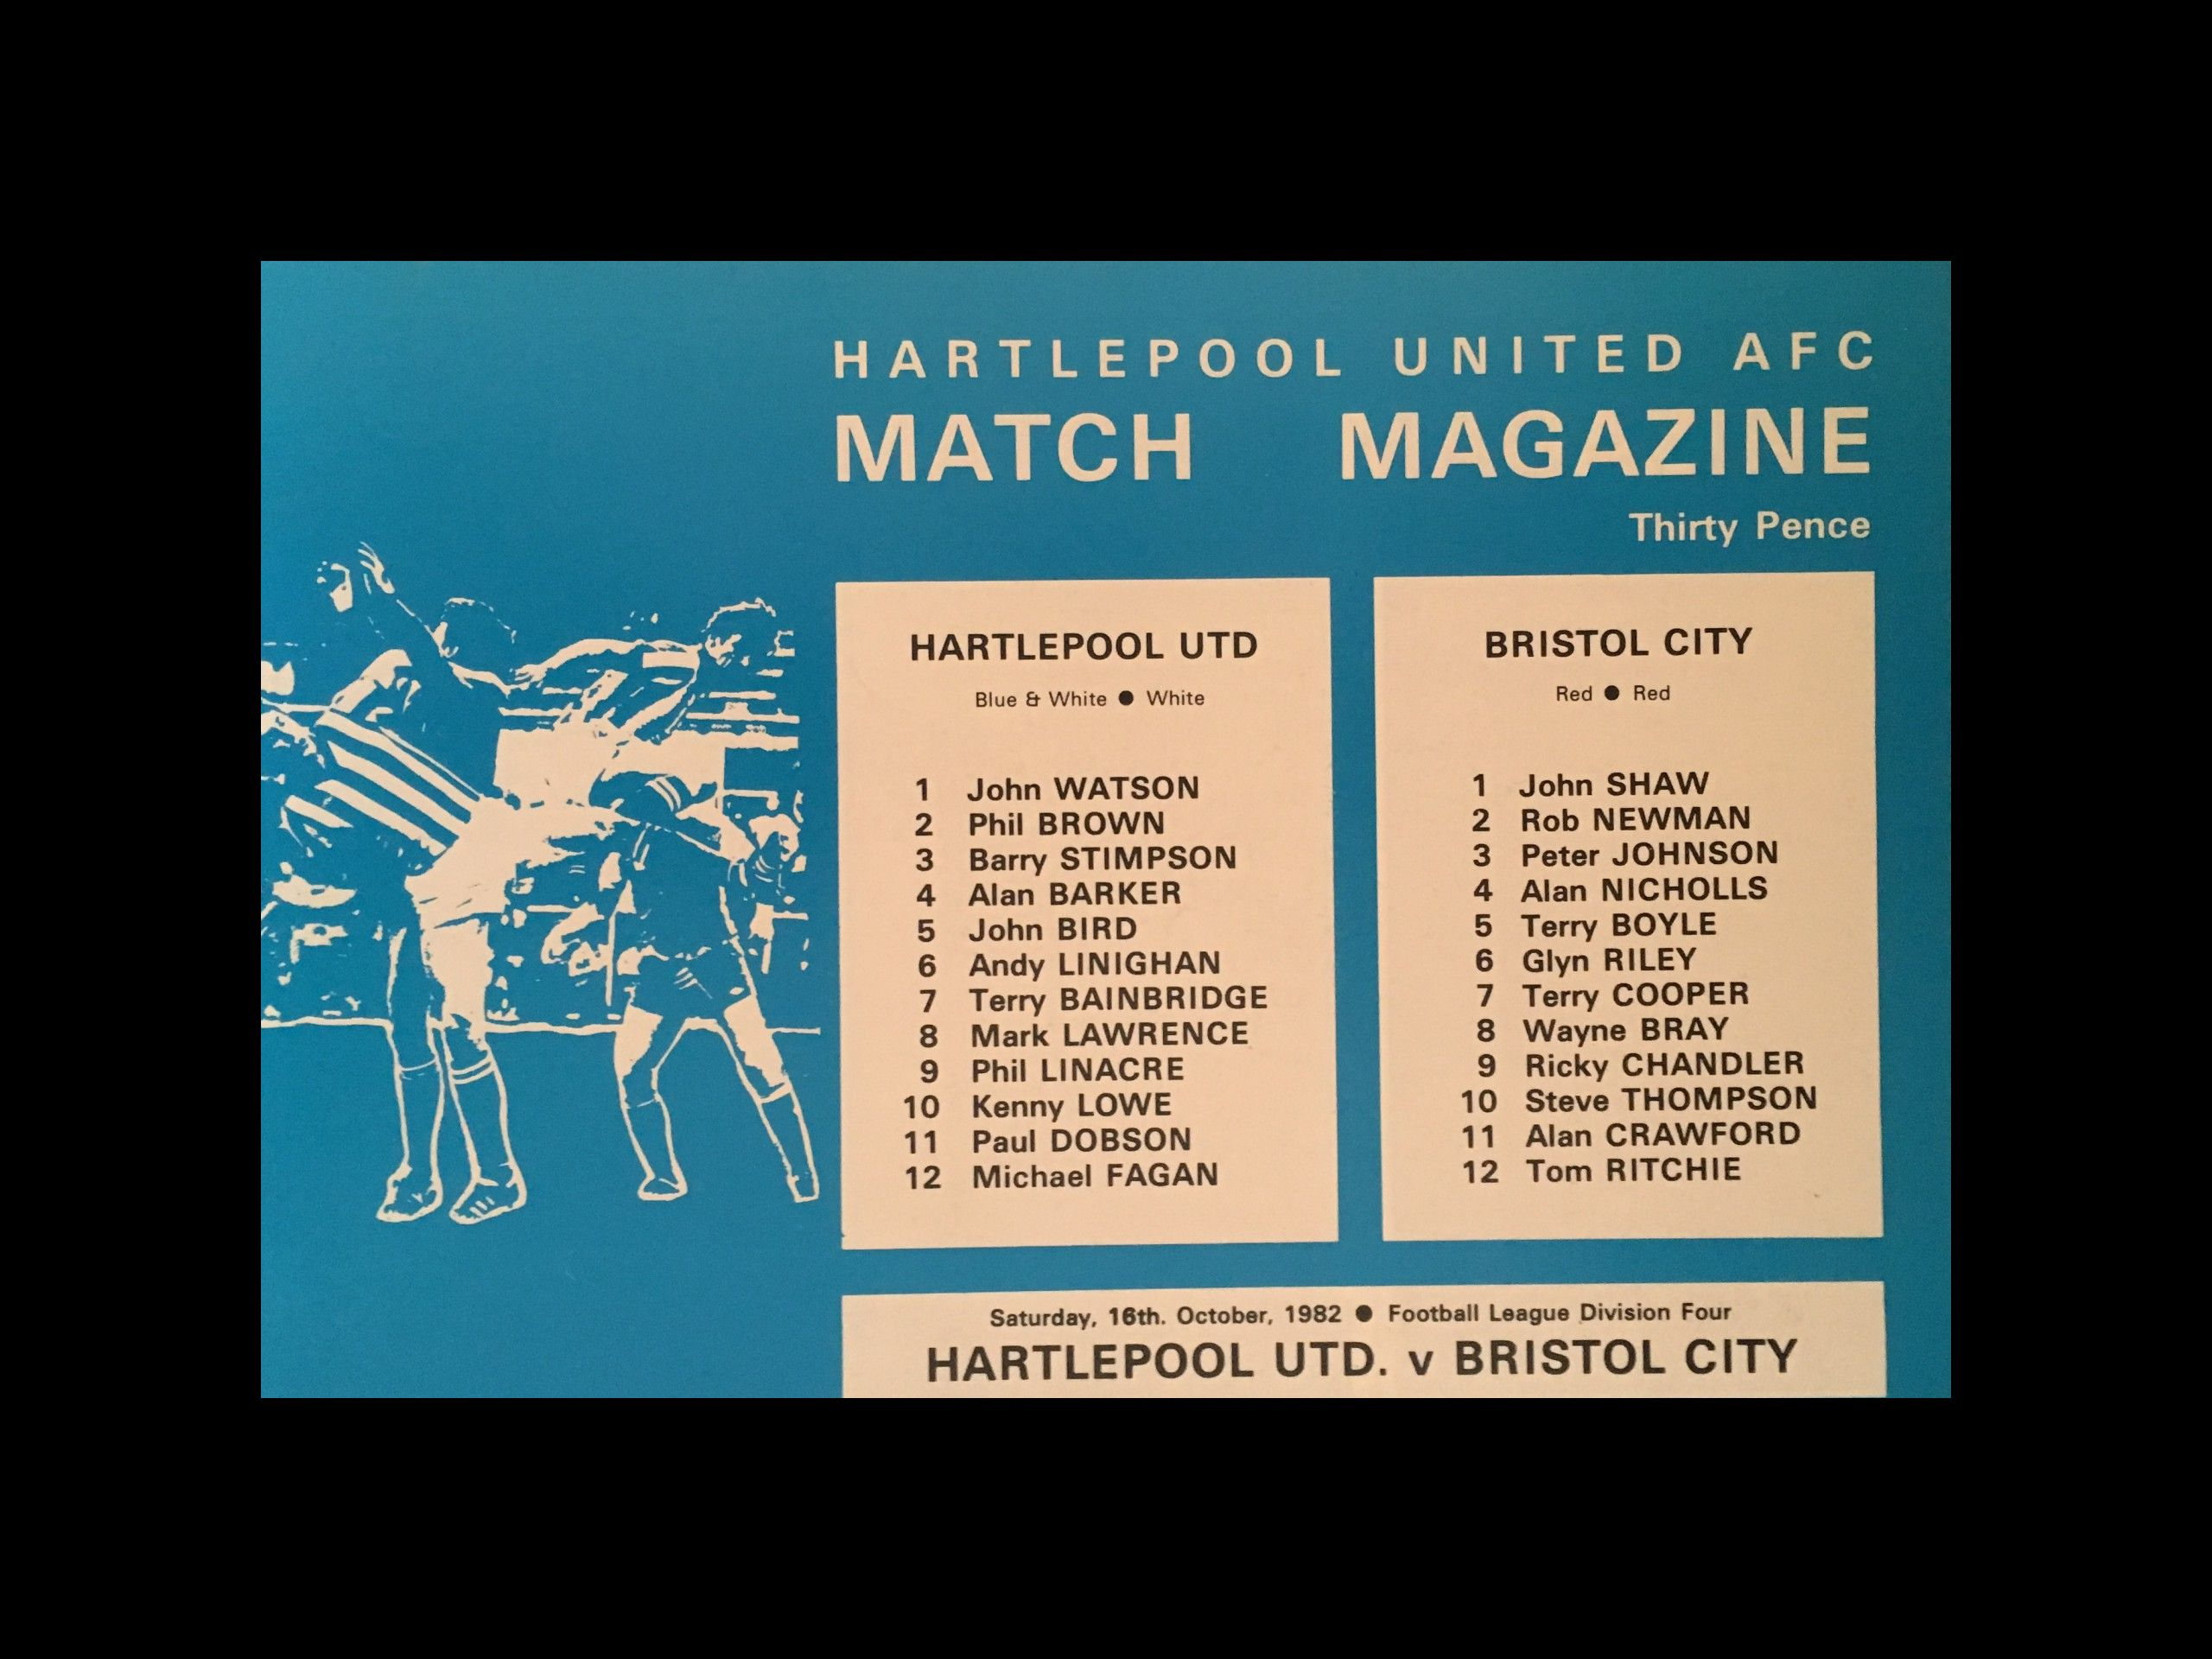 Hartlepool United v Bristol City 16-10-82 Programme